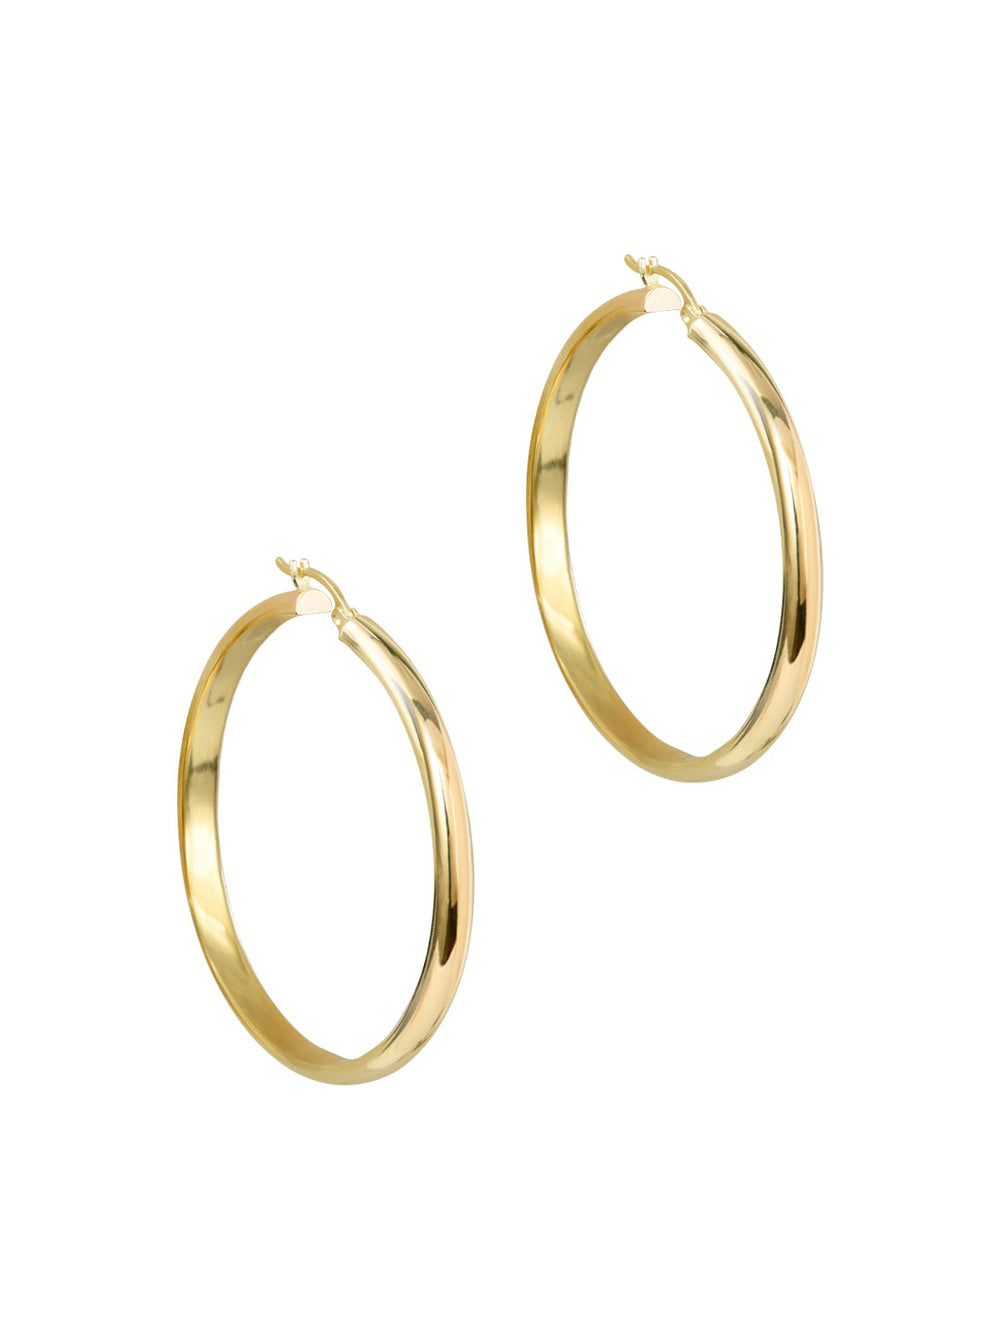 THE 10KT LOLA HOOPS (LARGE)